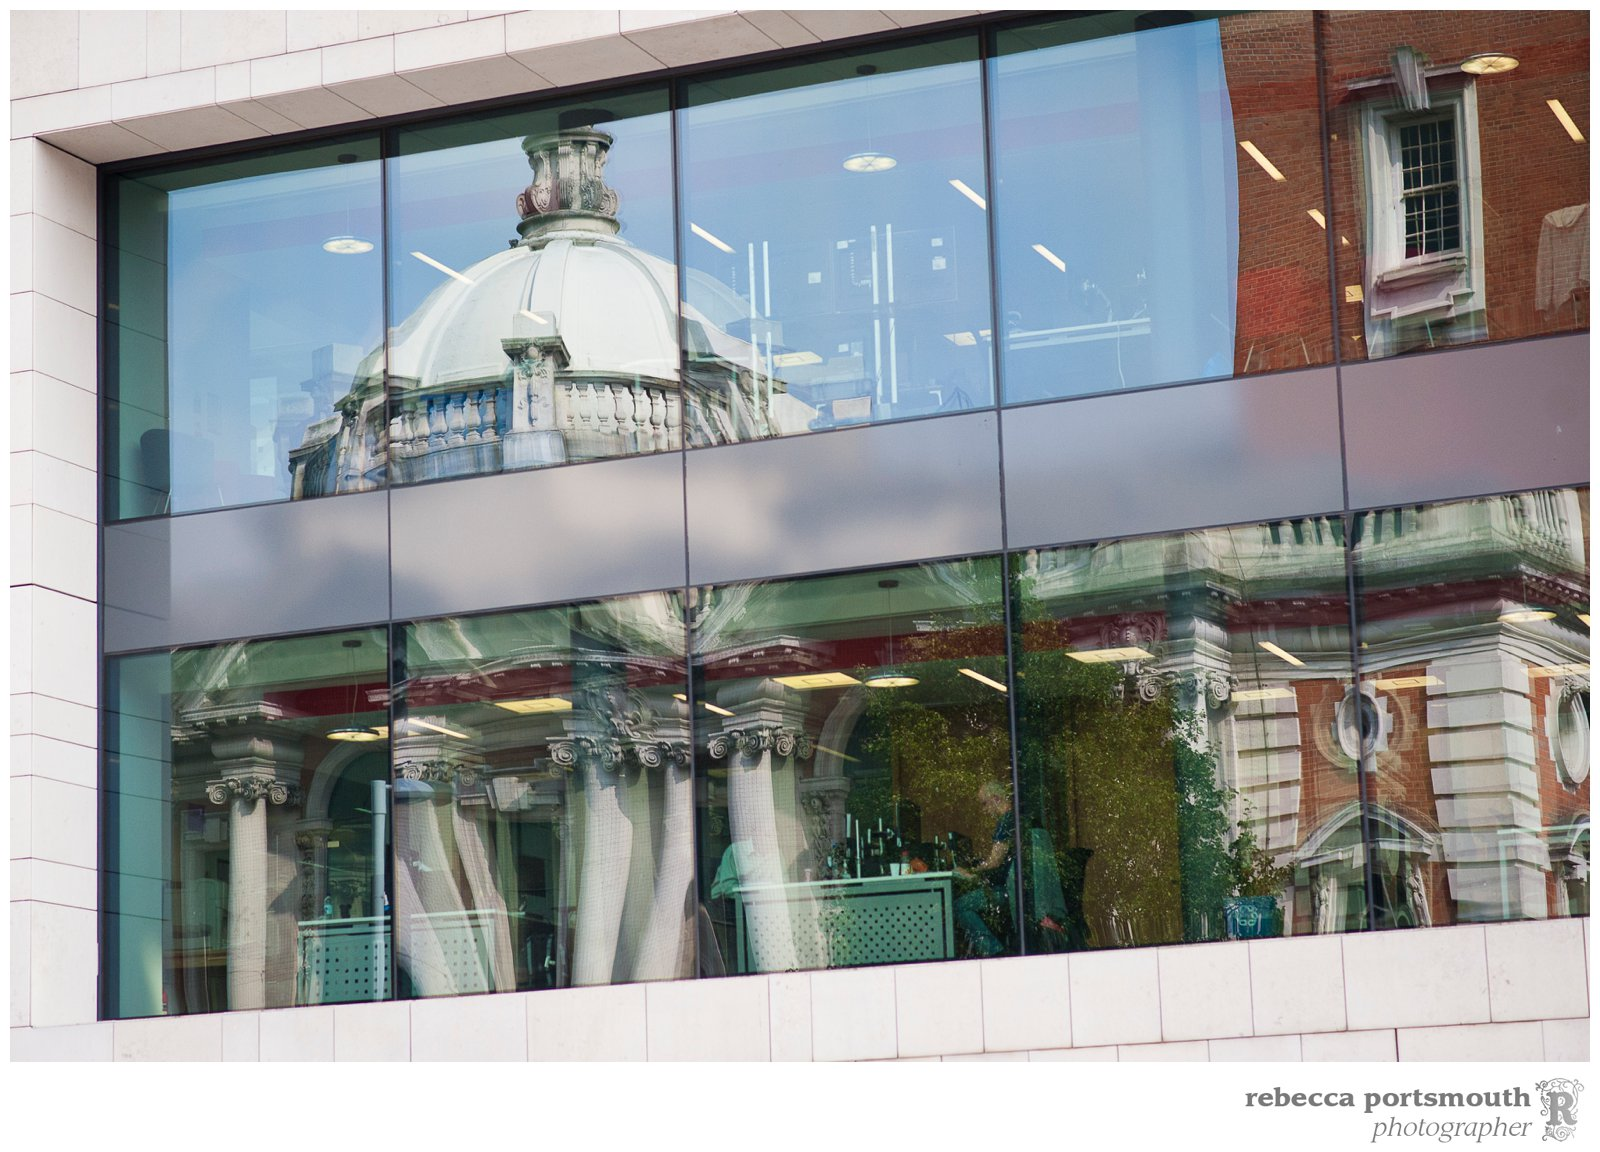 The Royal Borough of Greenwich Town Hall reflected in a modern glass building opposite